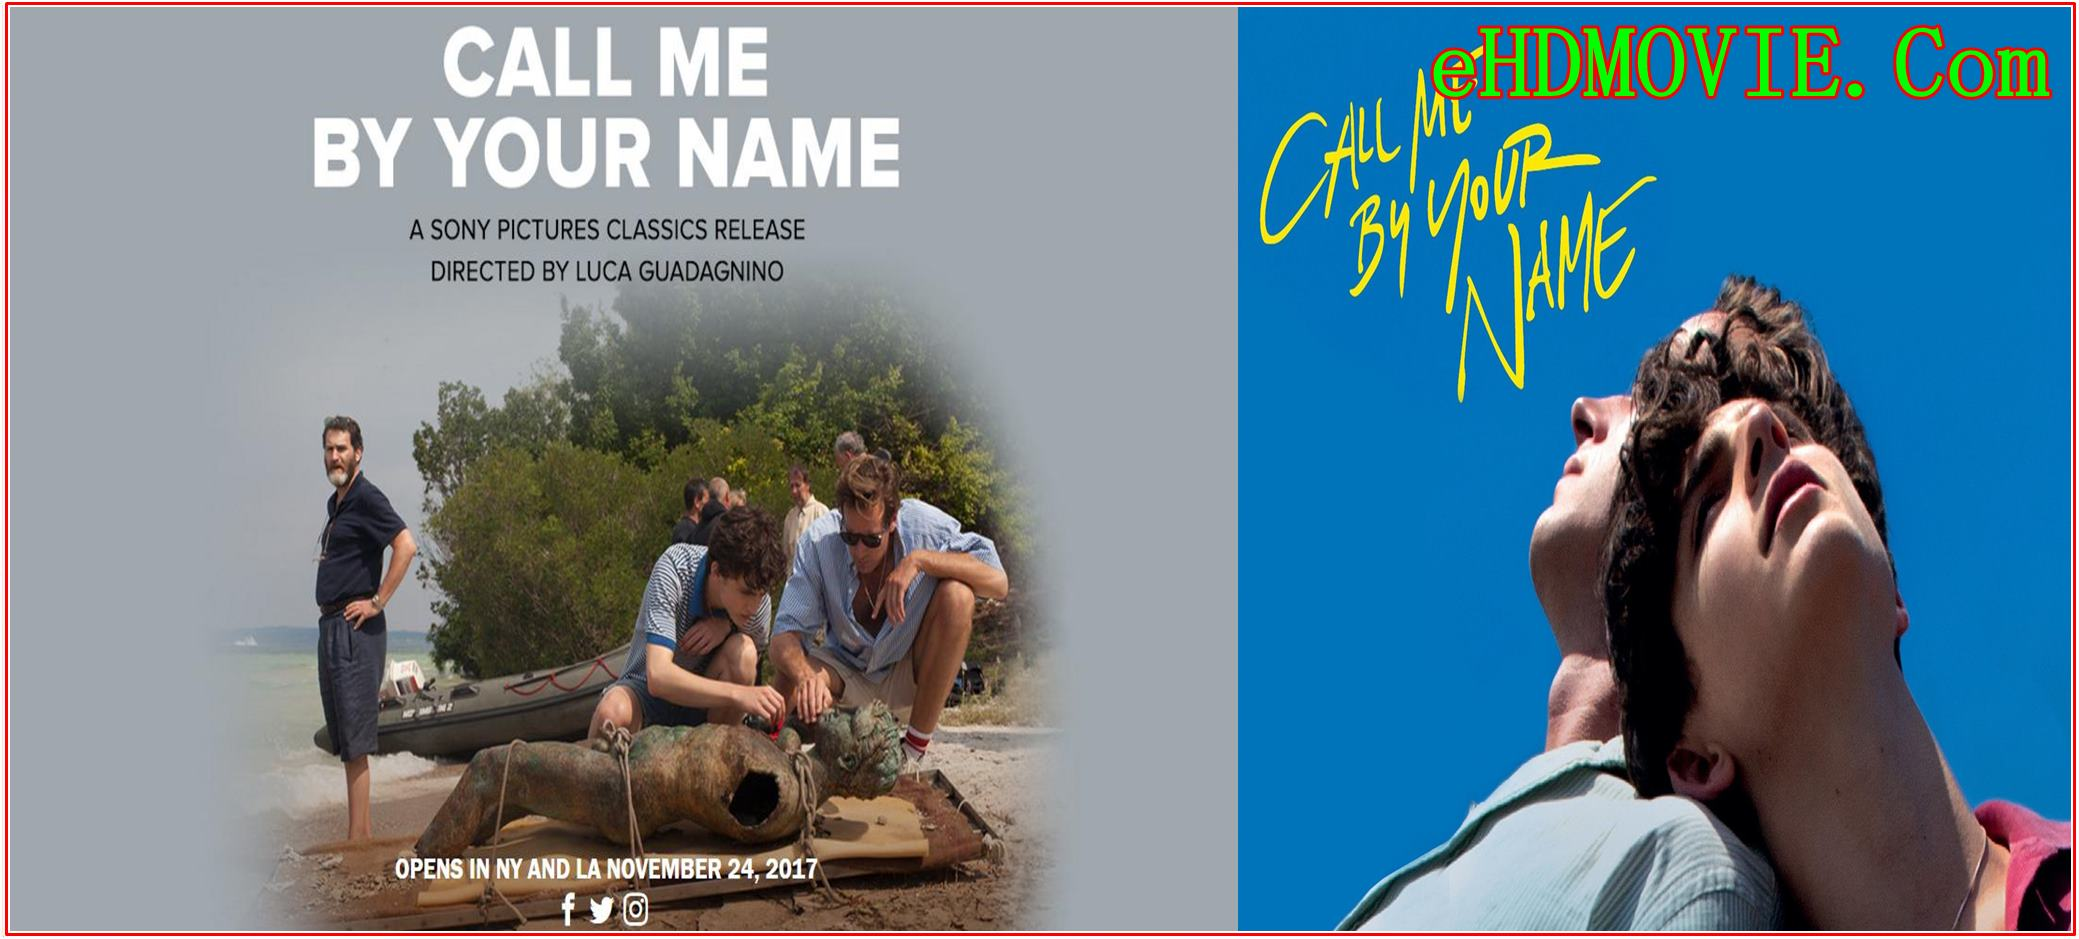 Call Me by Your Name 2017 Full Movie English 720p – 480p ORG BRRip 500MB – 1GB ESubs Free Download